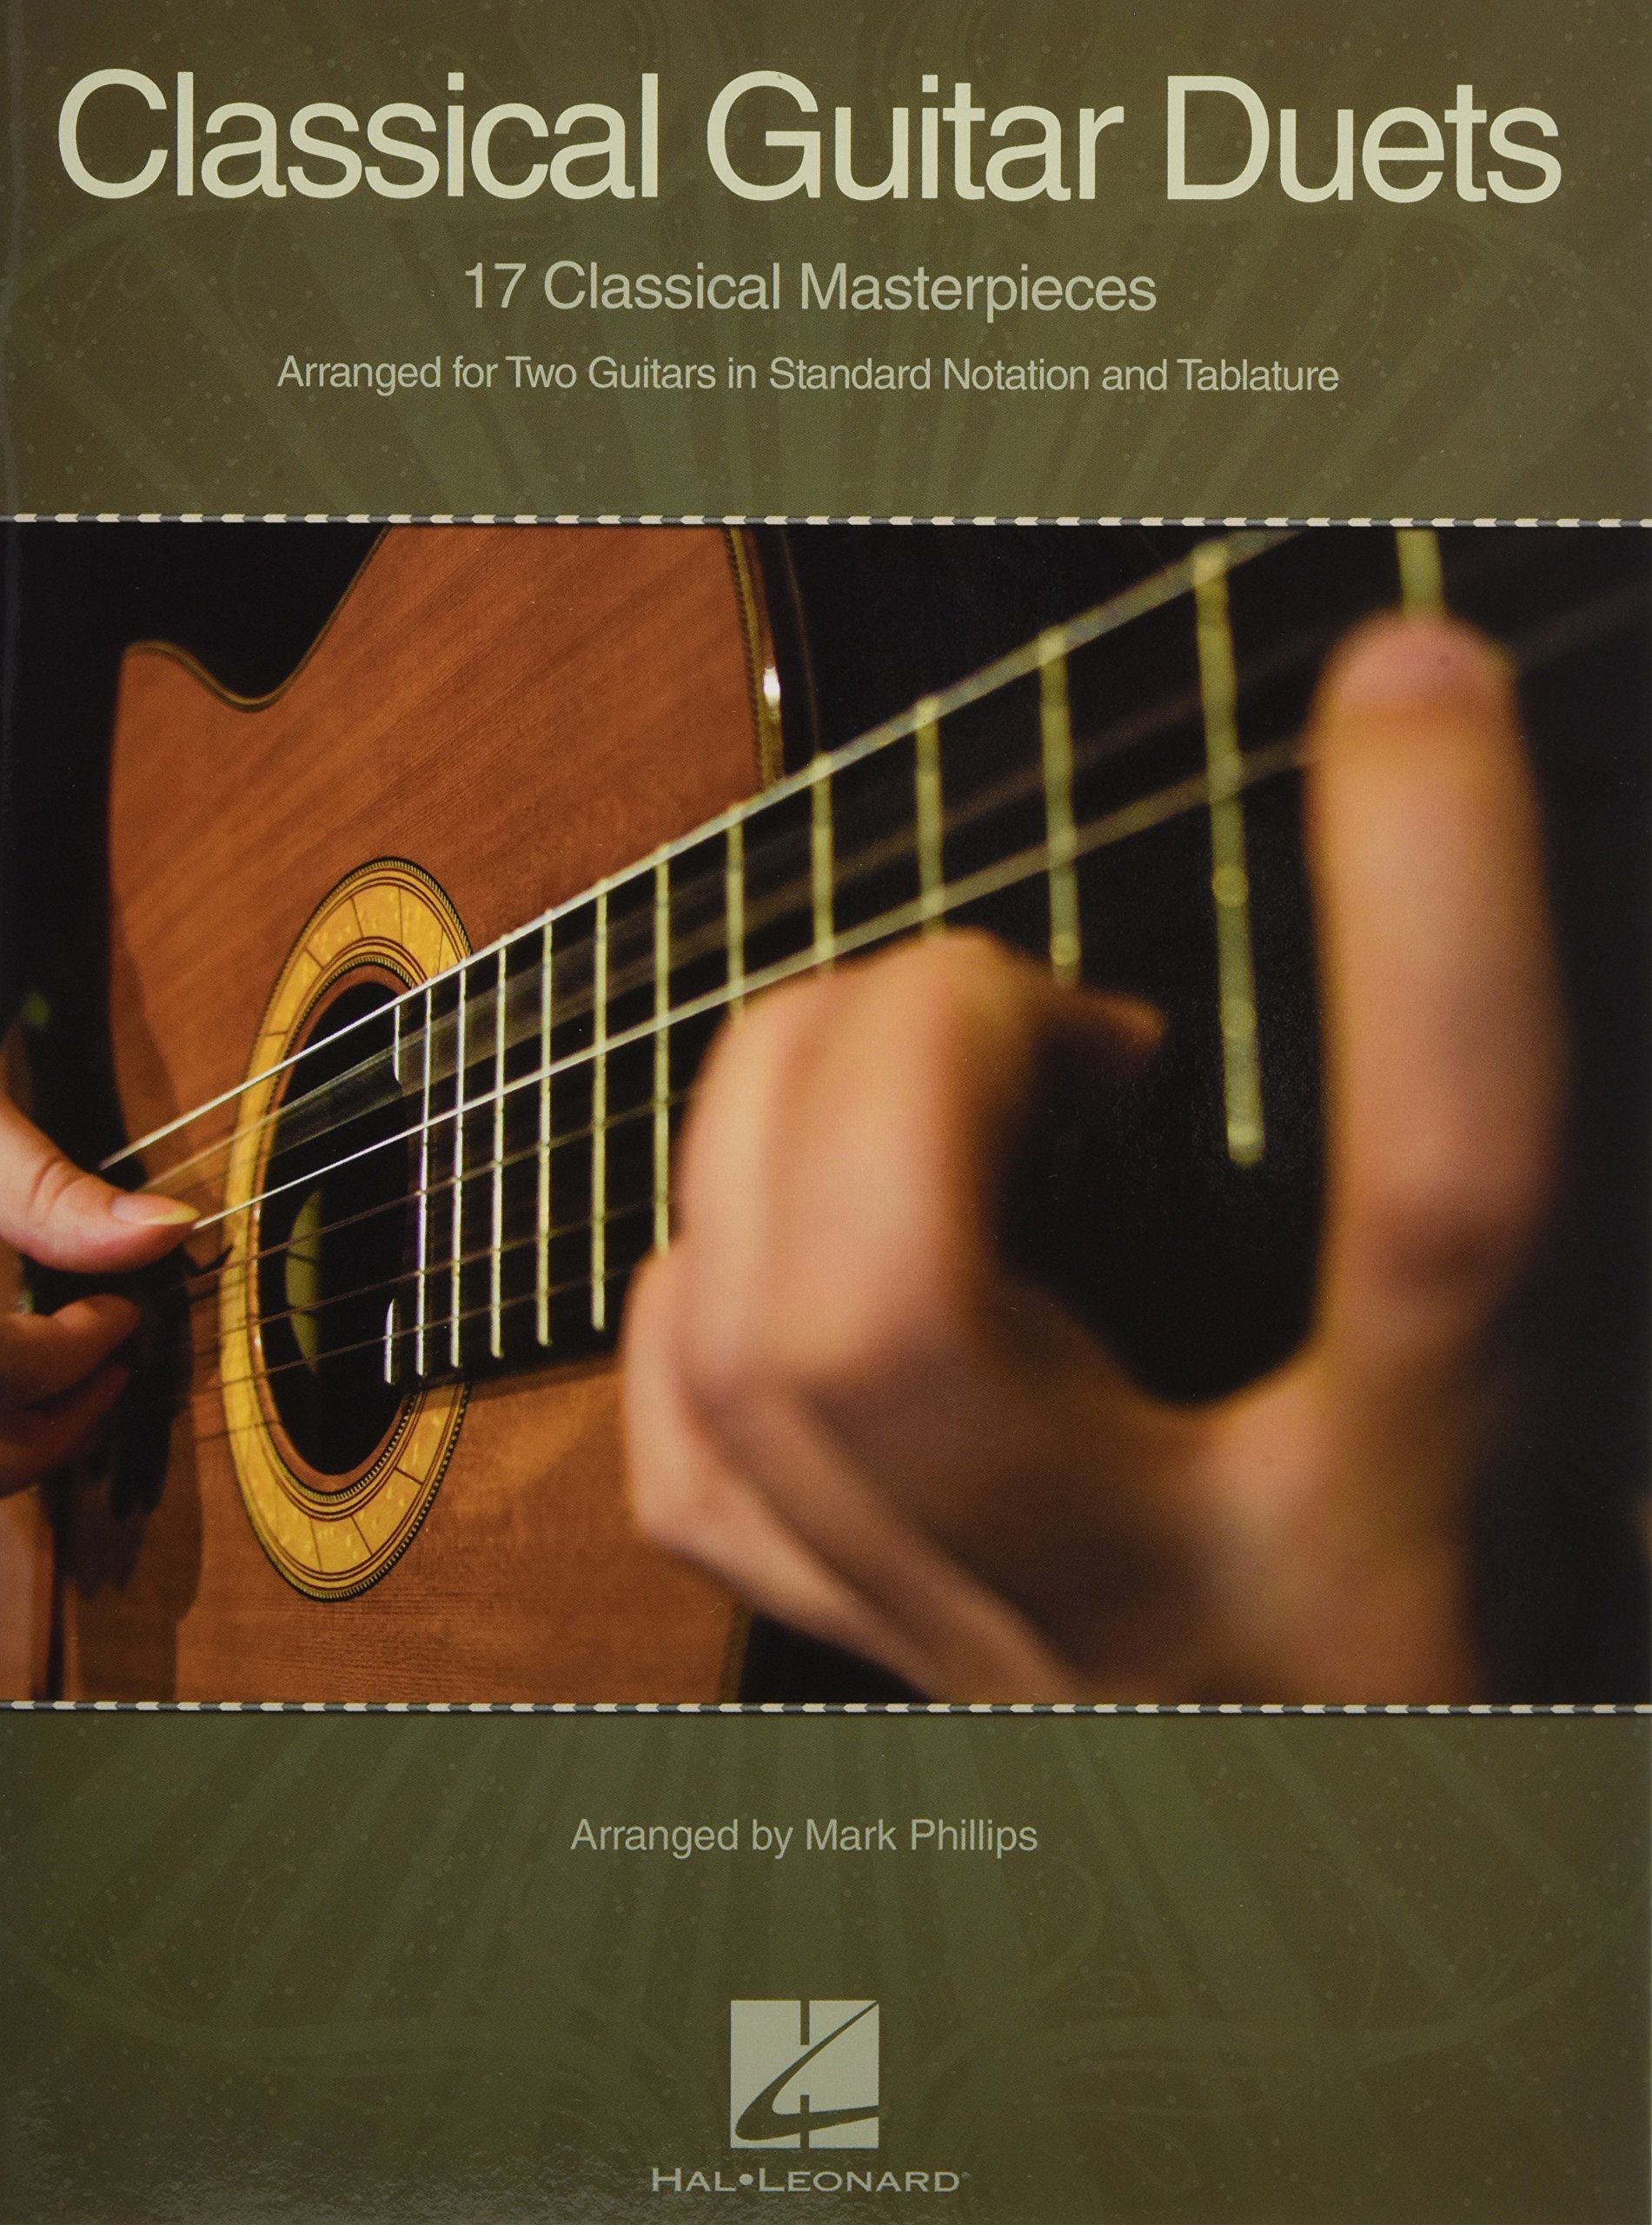 Classical Guitar Duets: 17 Classical Masterpieces: Amazon.es: Hal ...